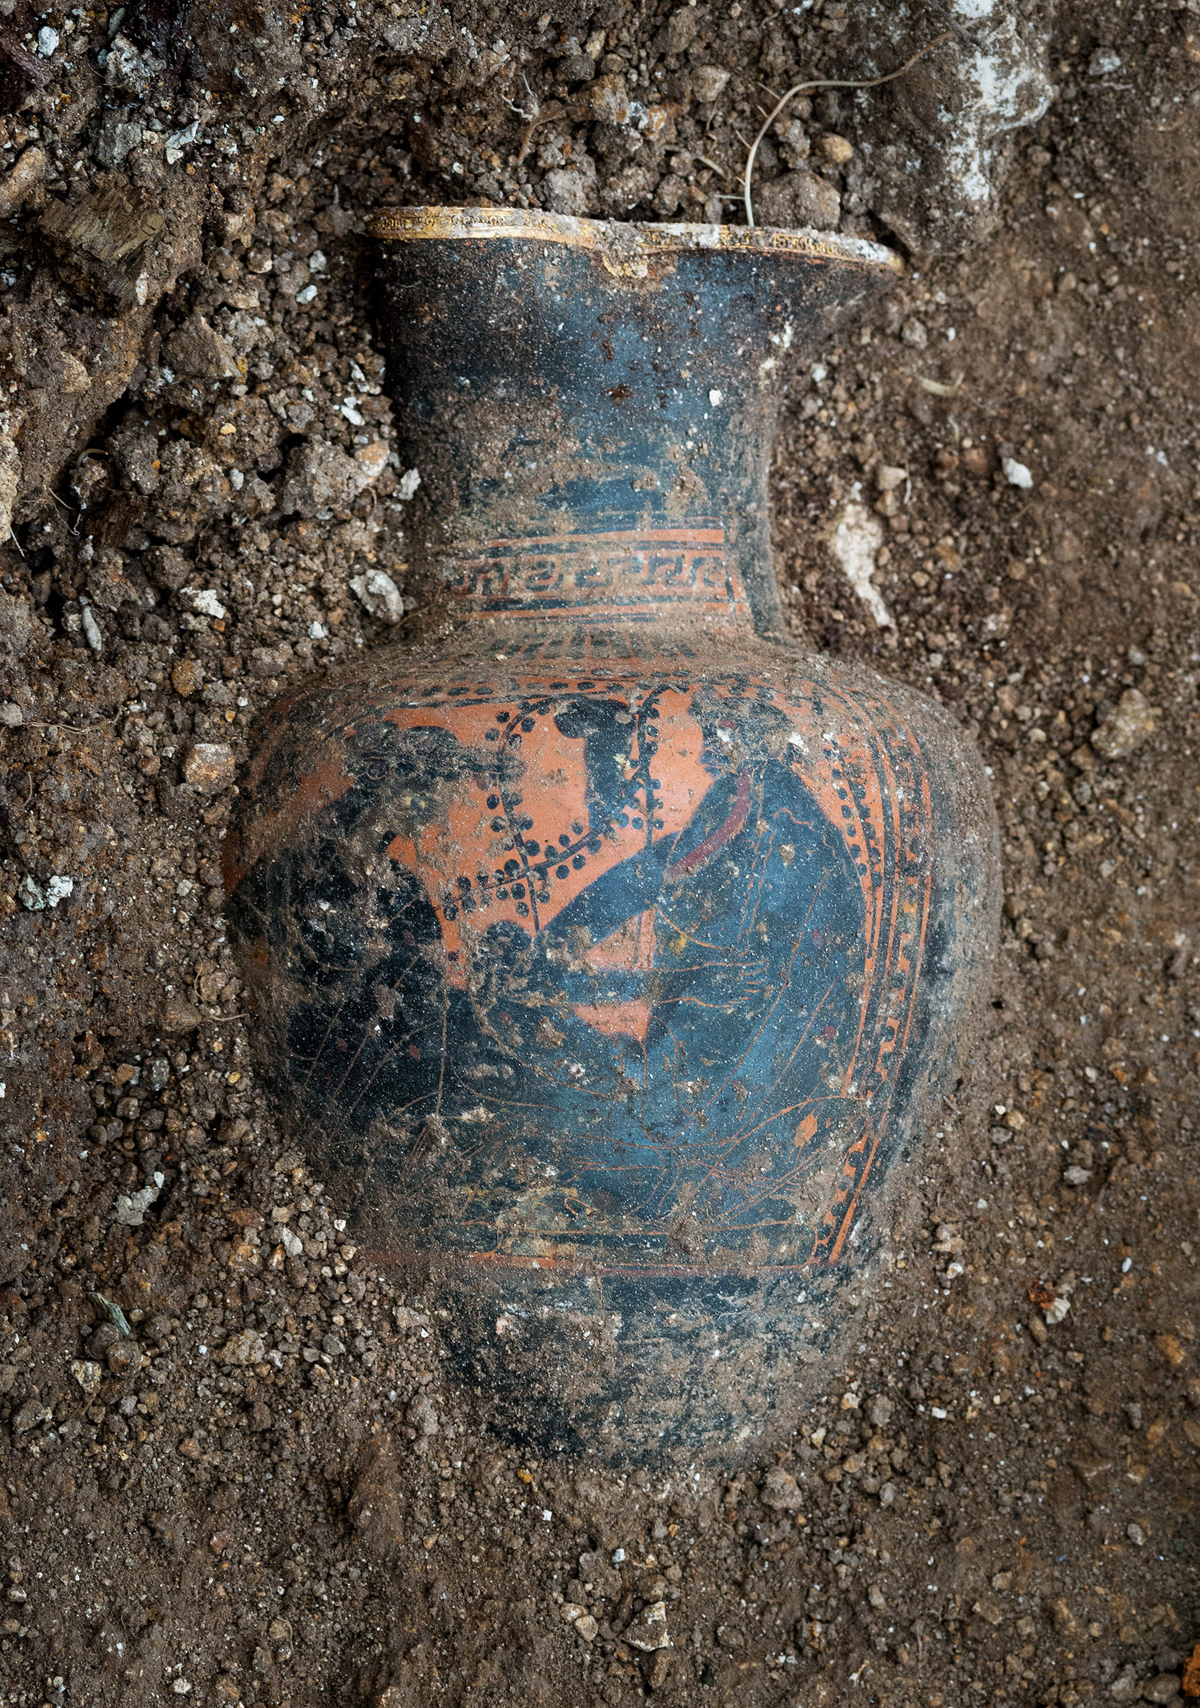 Dionysos and friend on the vase unearthed at Lavau